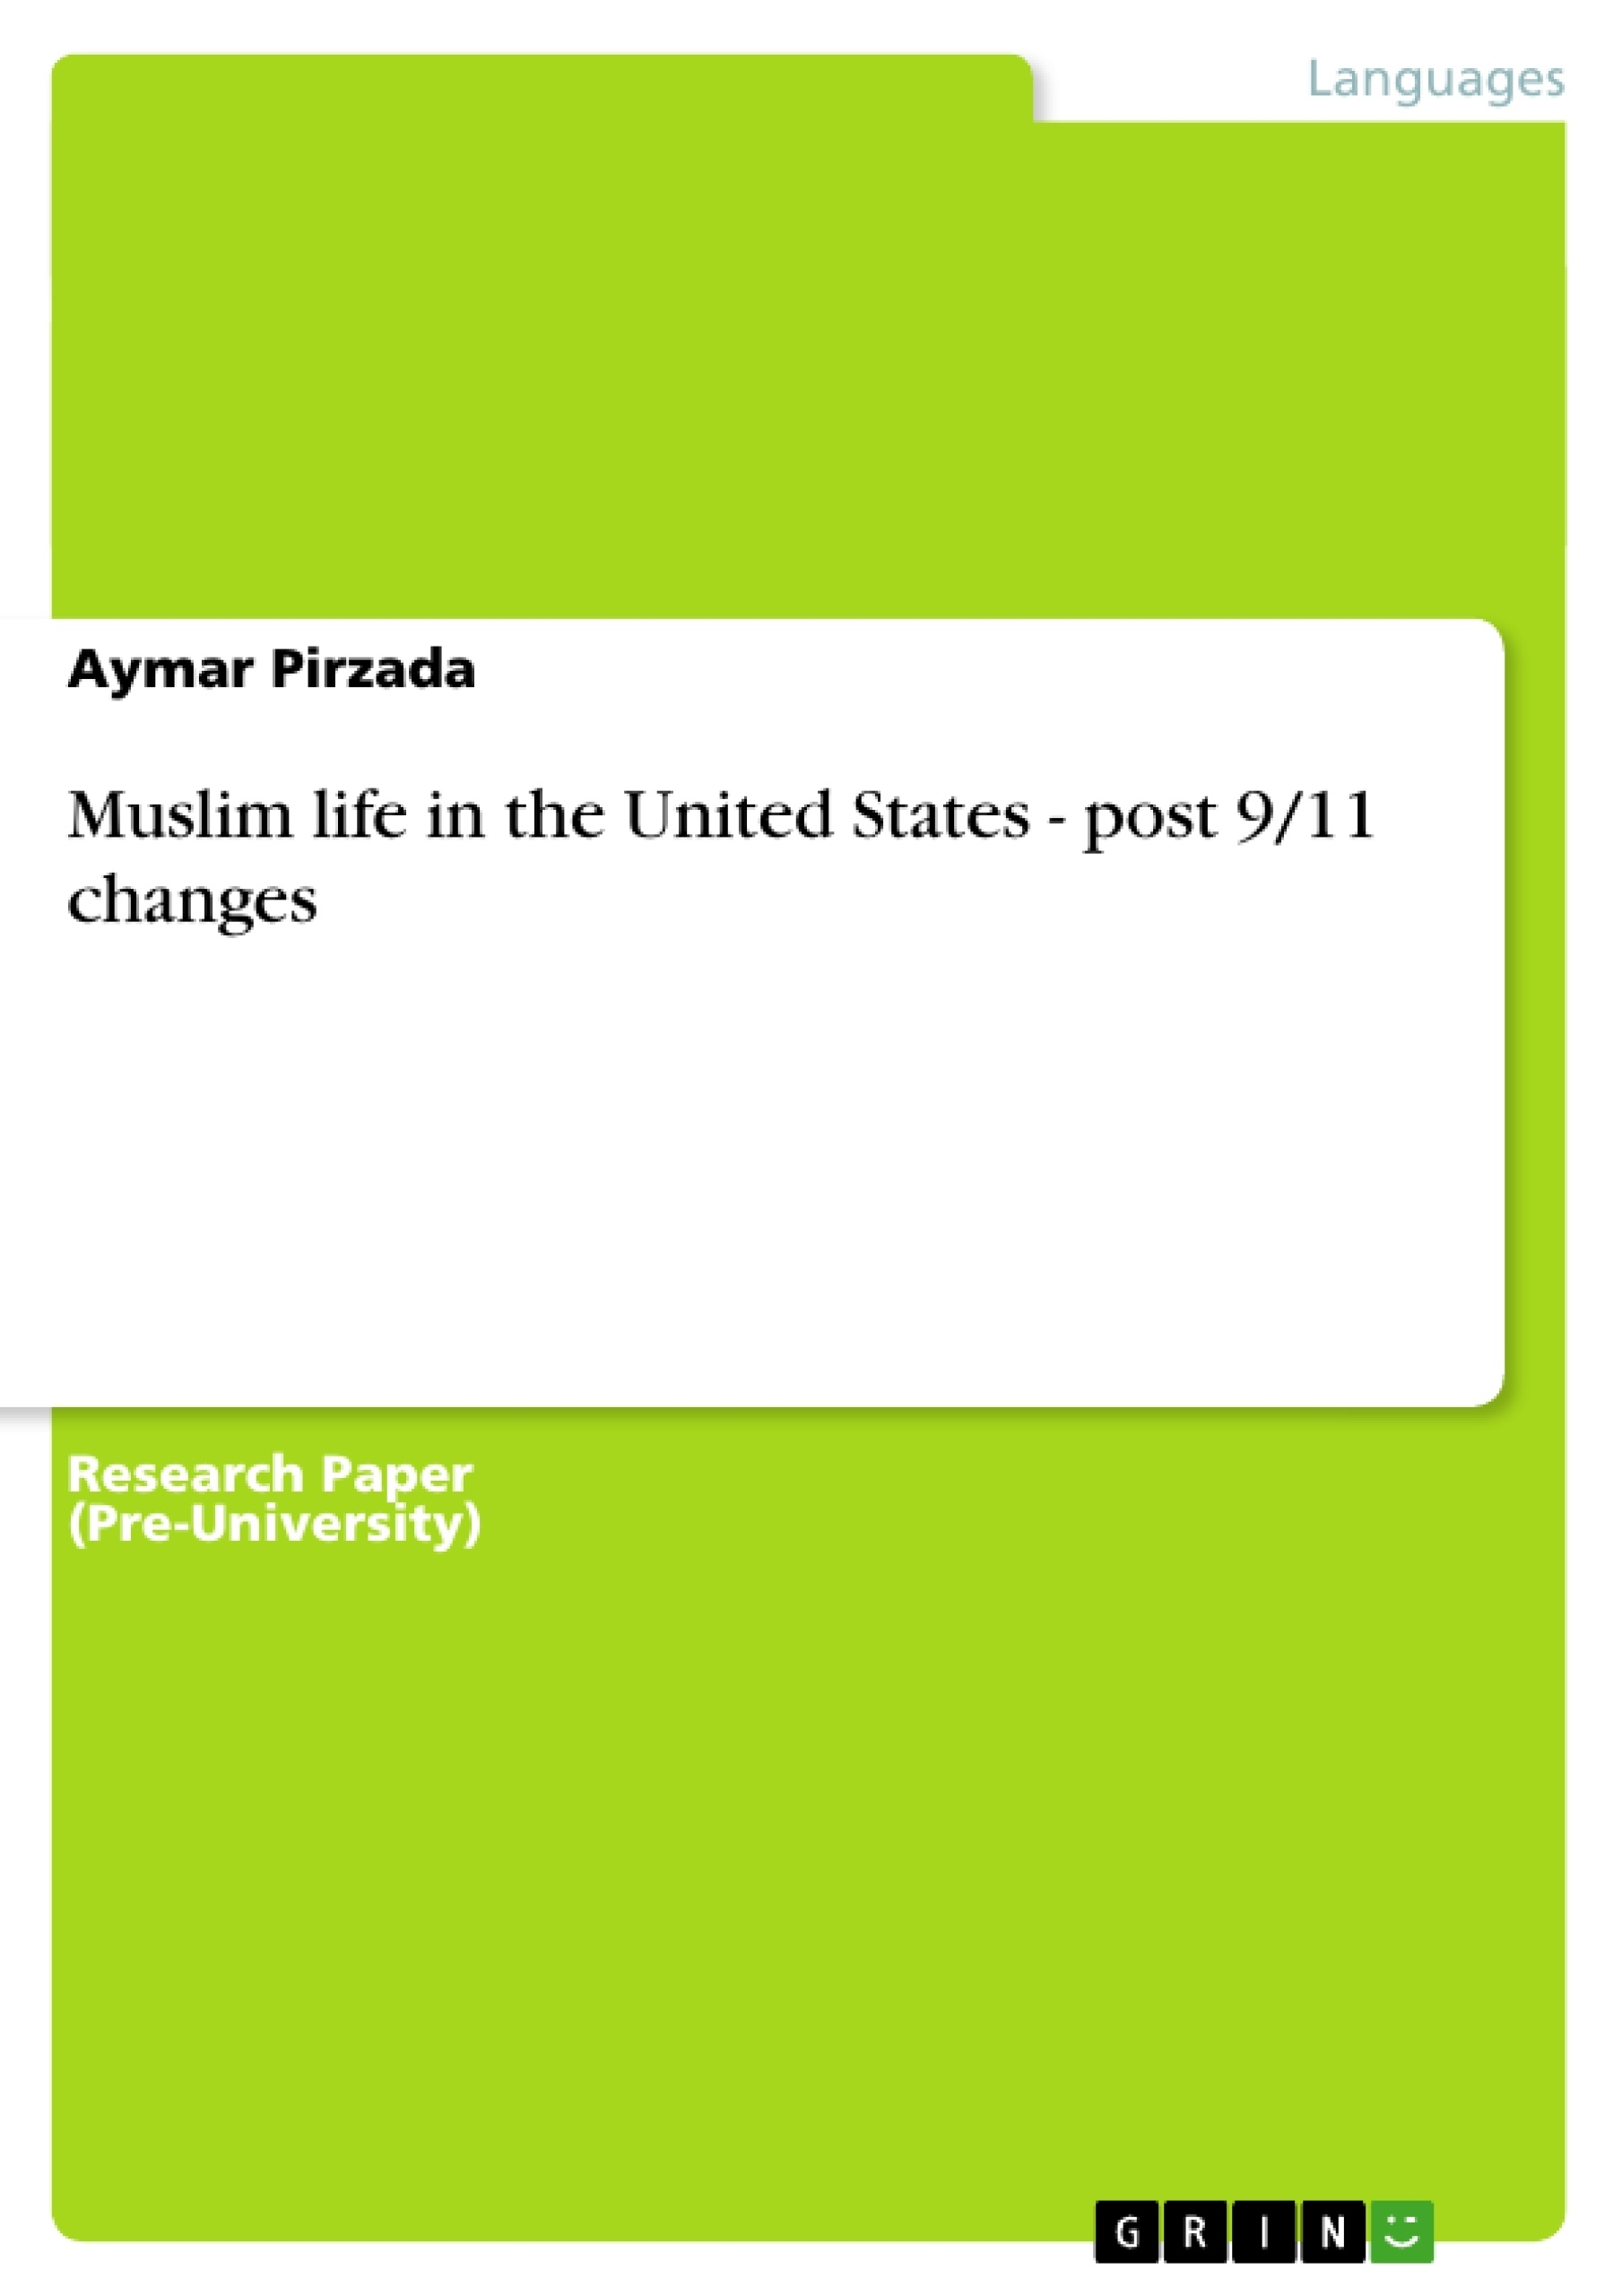 Title: Muslim life in the United States - post 9/11 changes